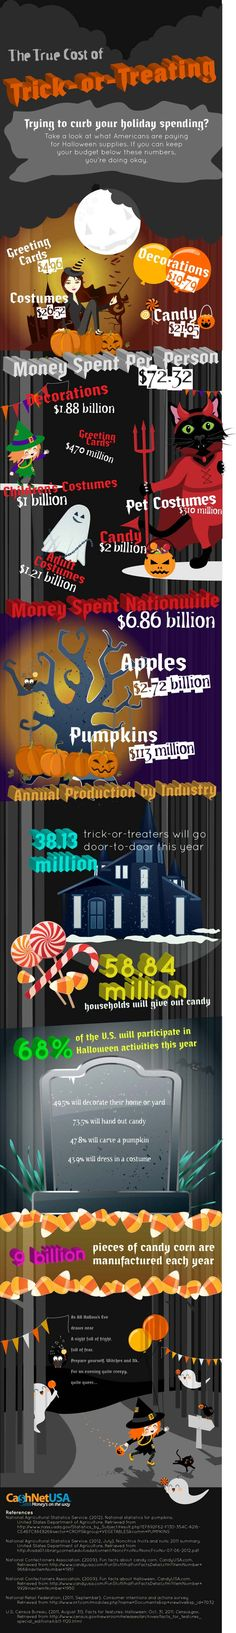 The True Cost of Trick-or-Treating